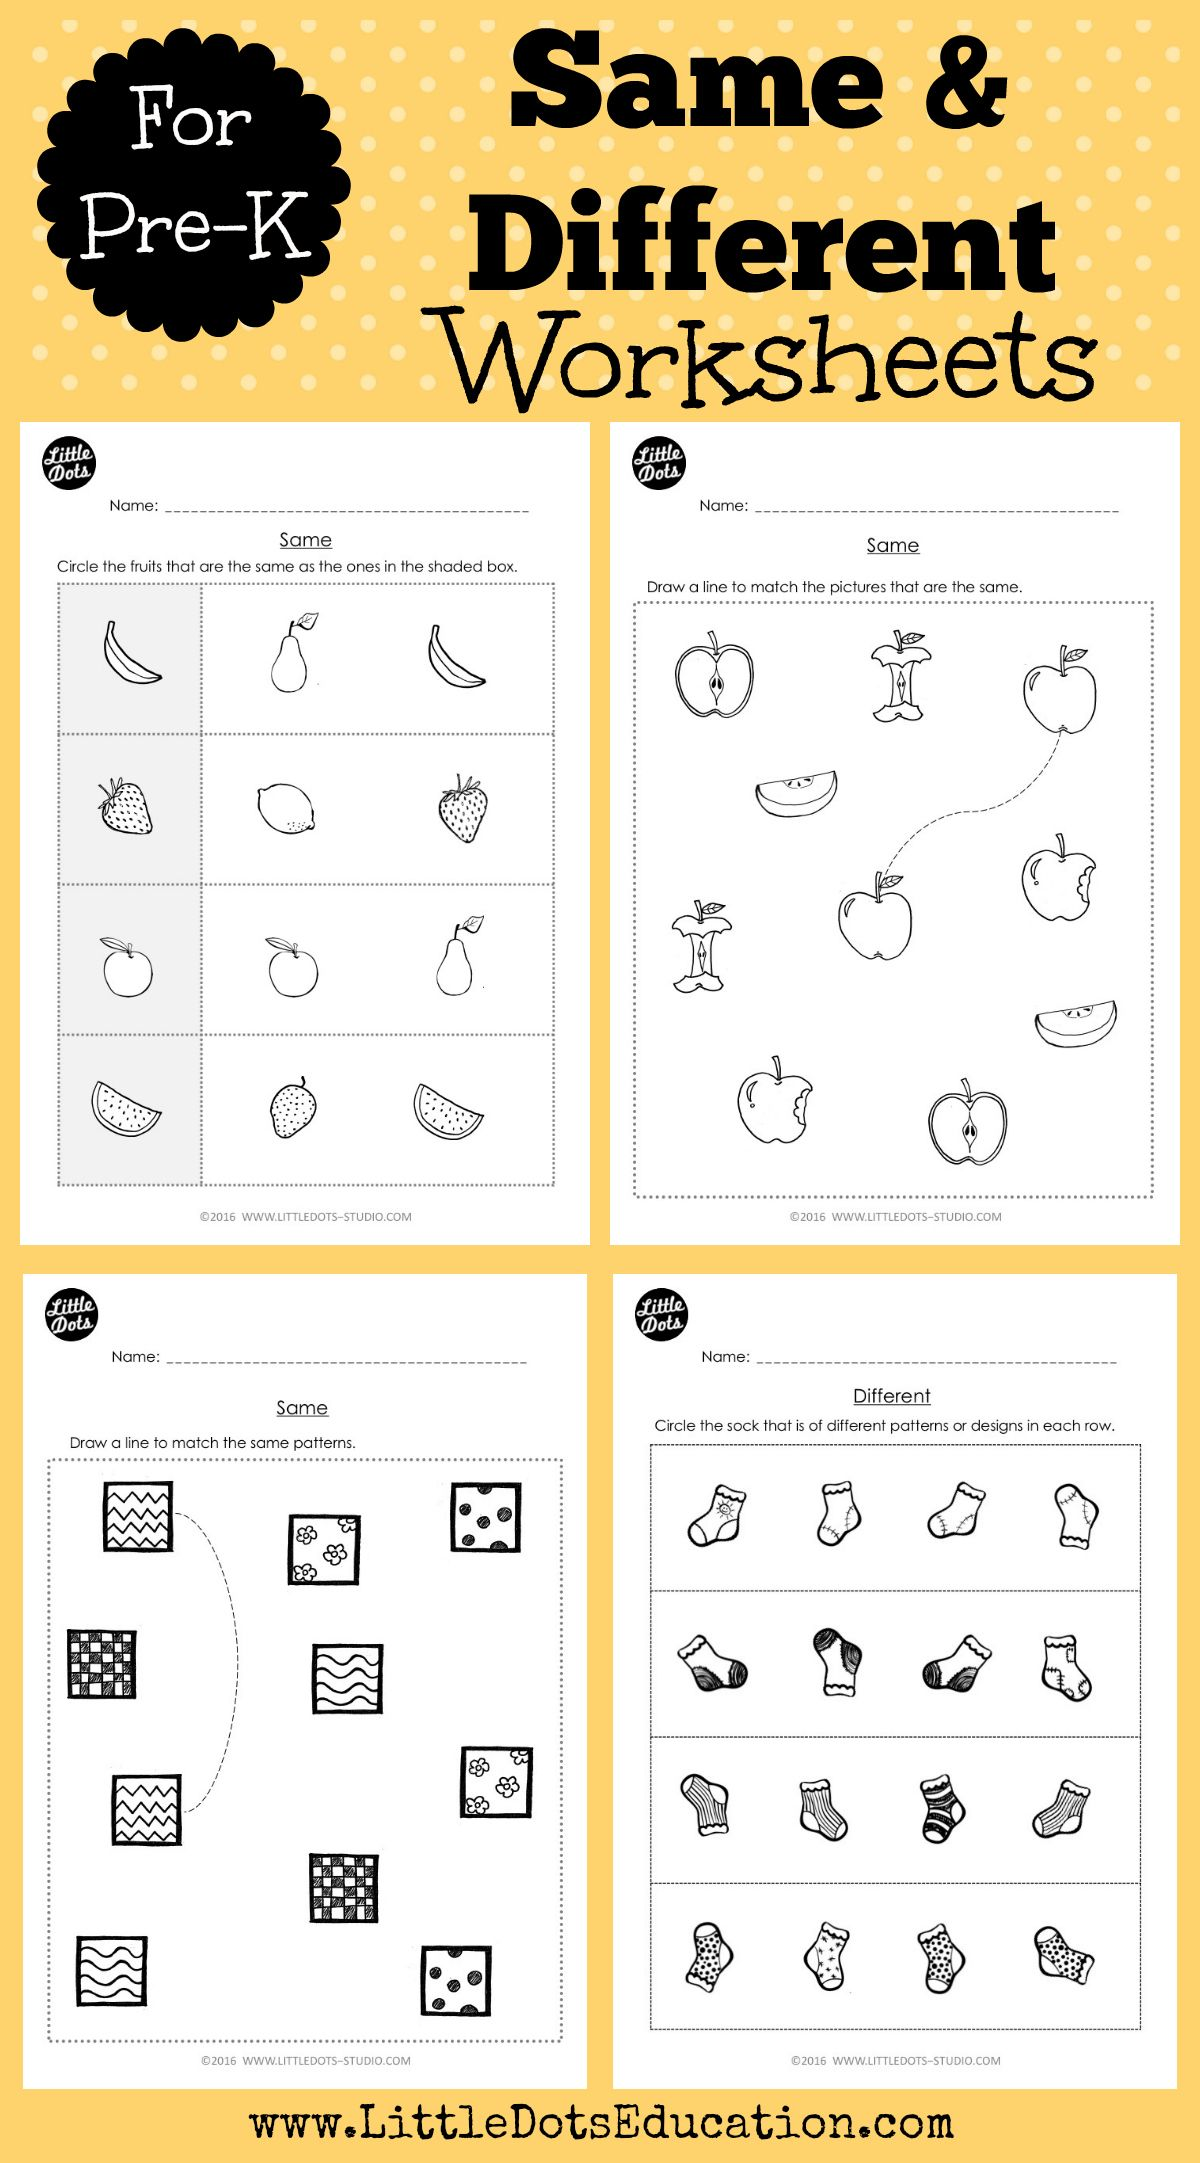 small resolution of Pre-K Same and Different Worksheets and Activities   Kindergarten worksheets